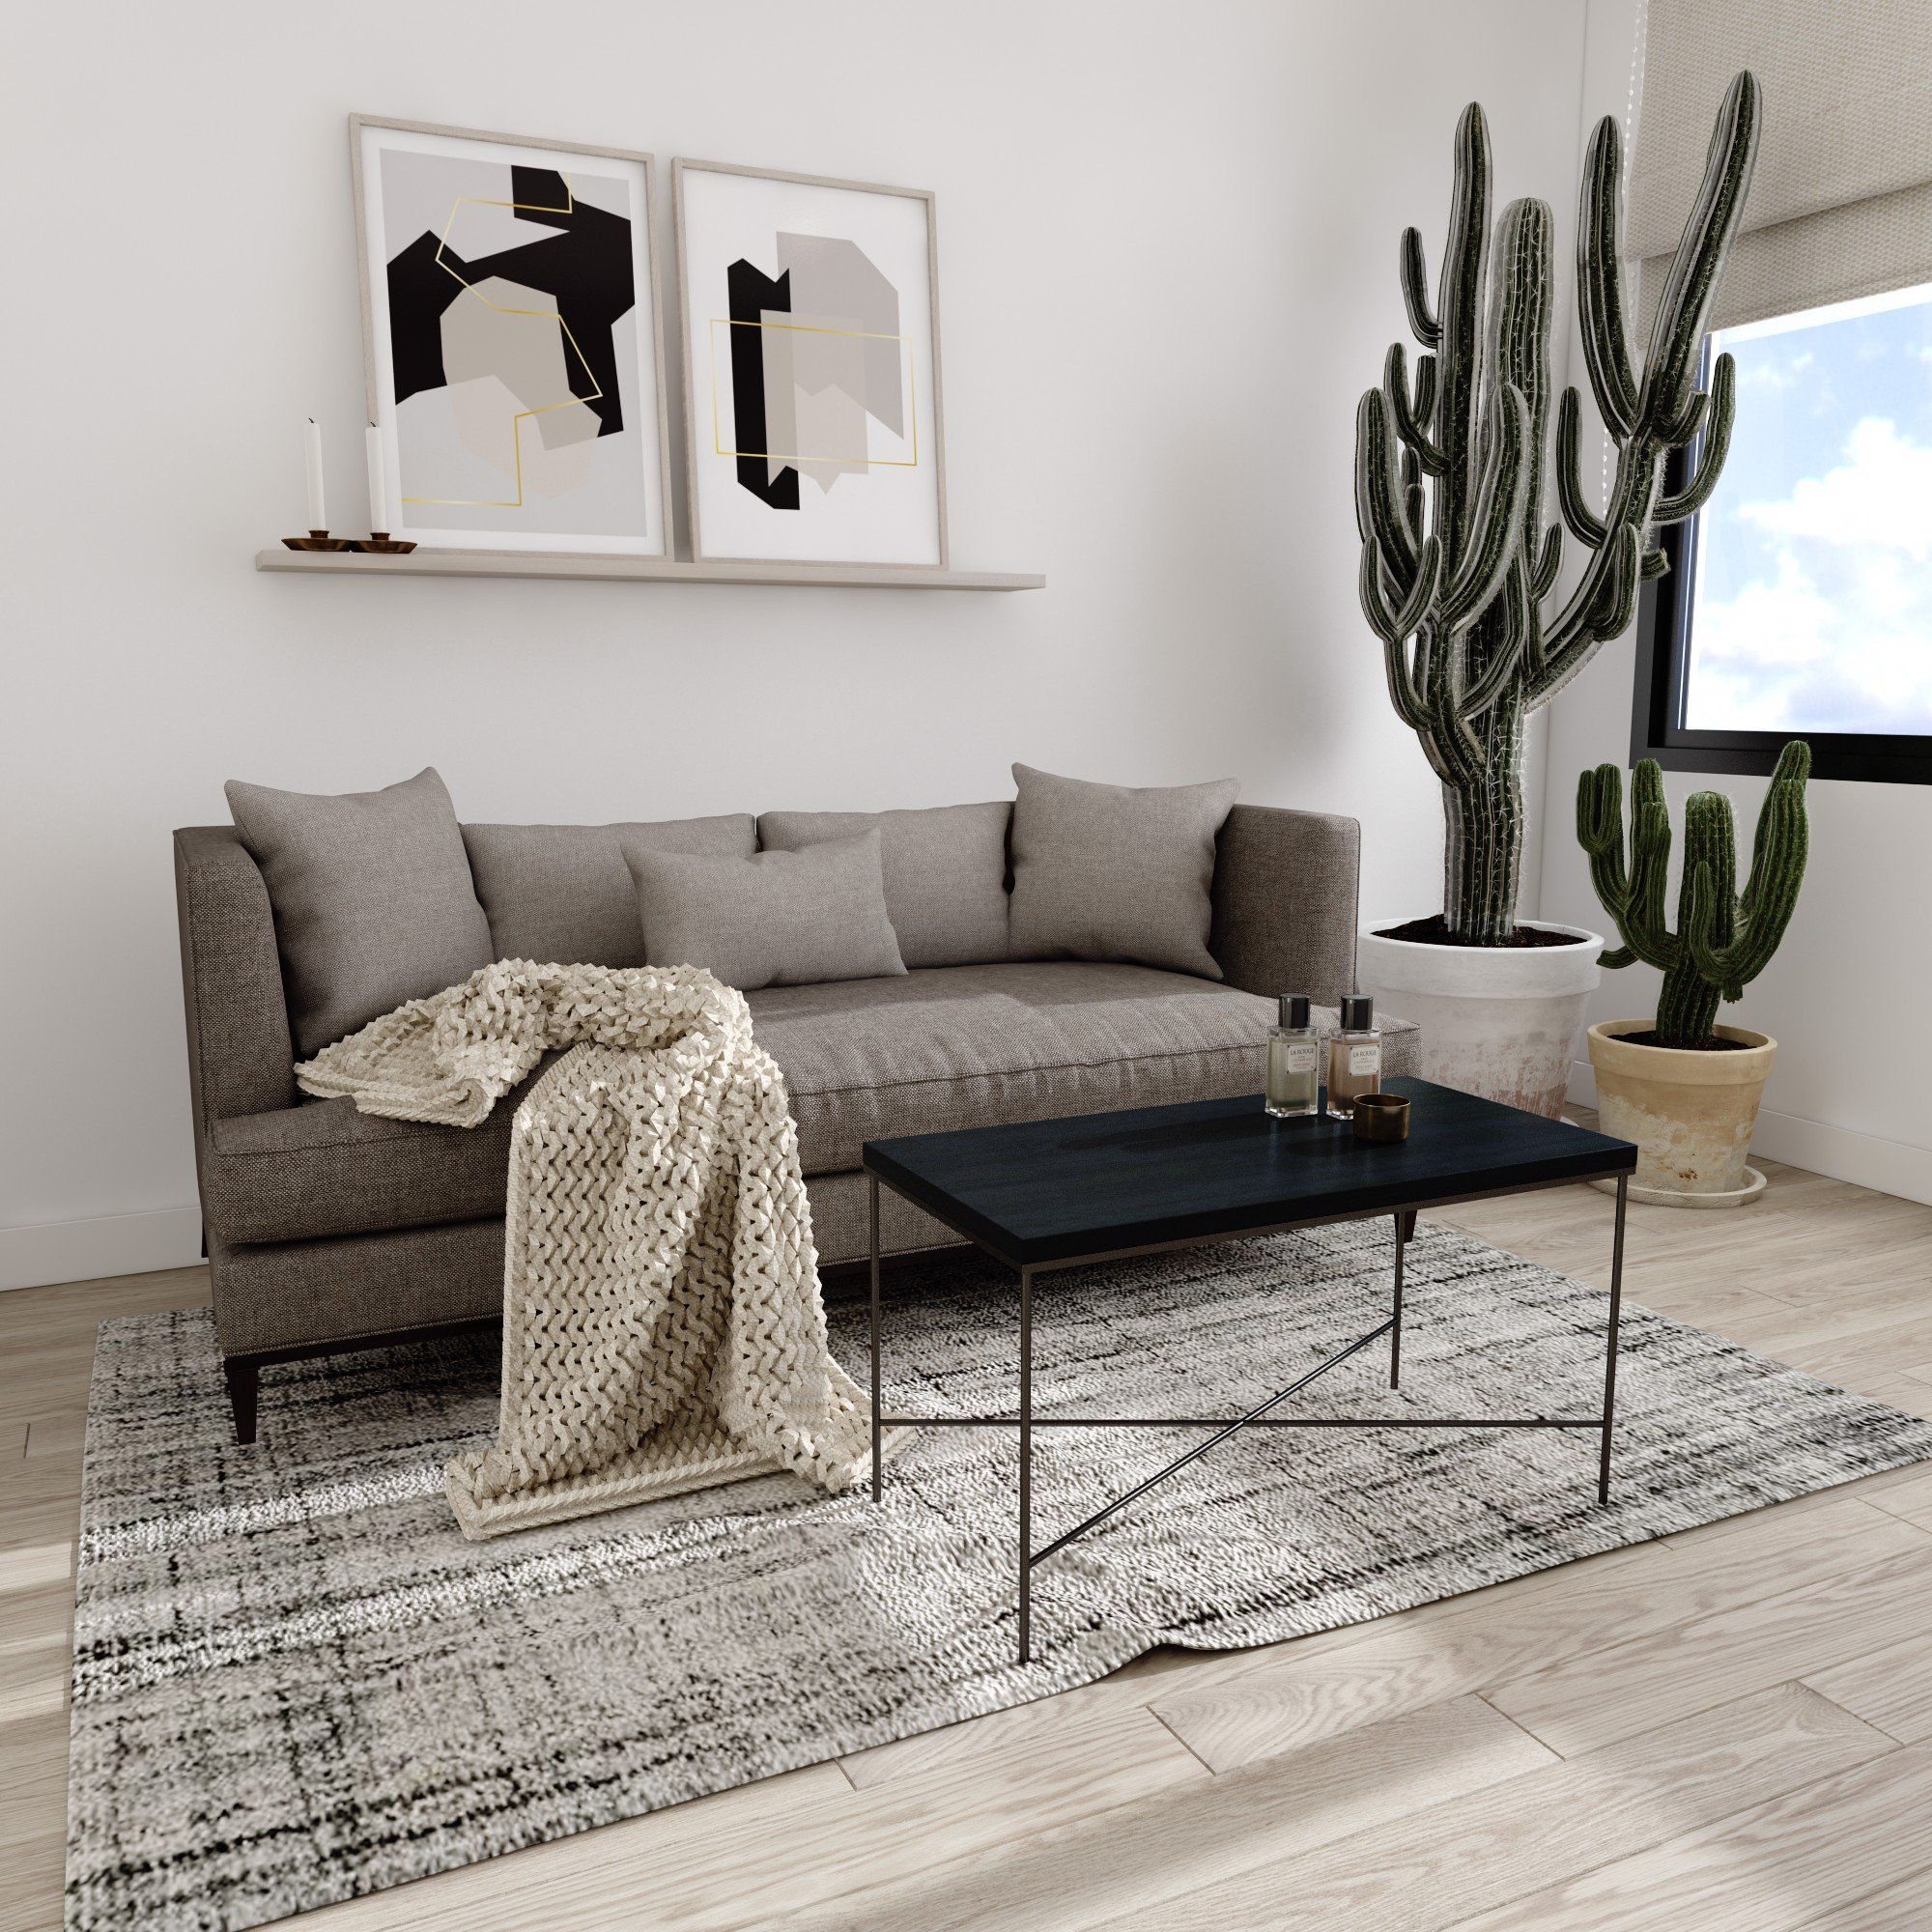 Bàn sofa X - Dark grey wood